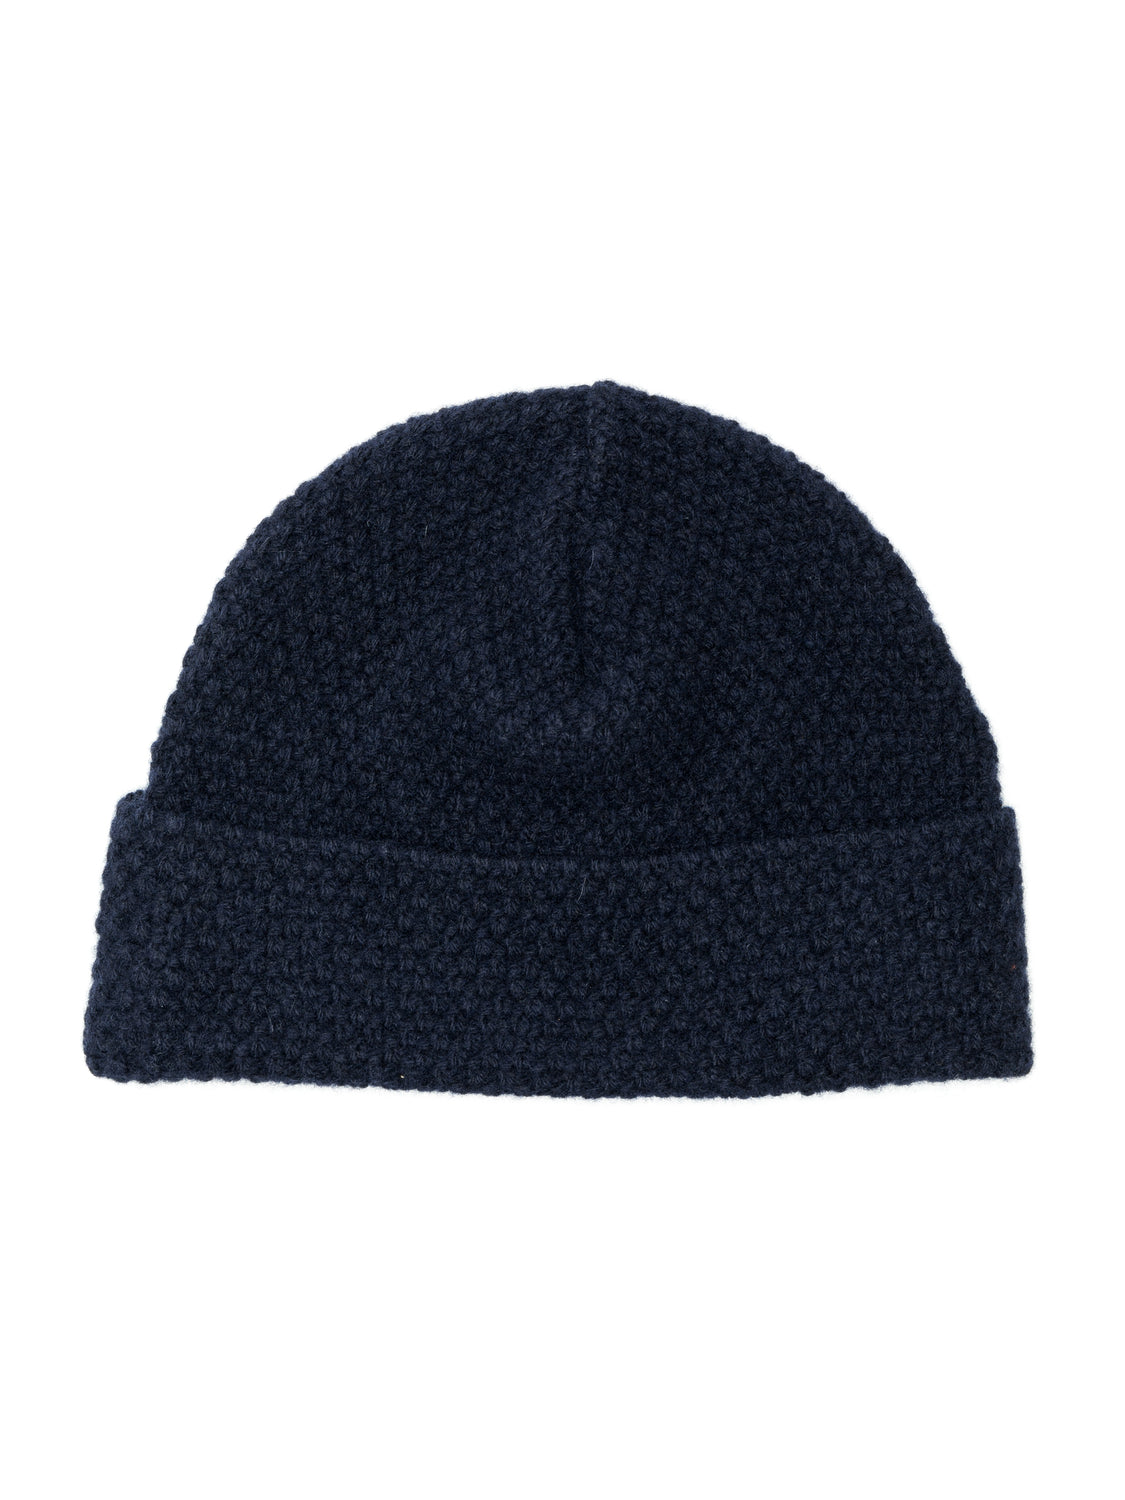 Arbury Hat Rymer in Navy